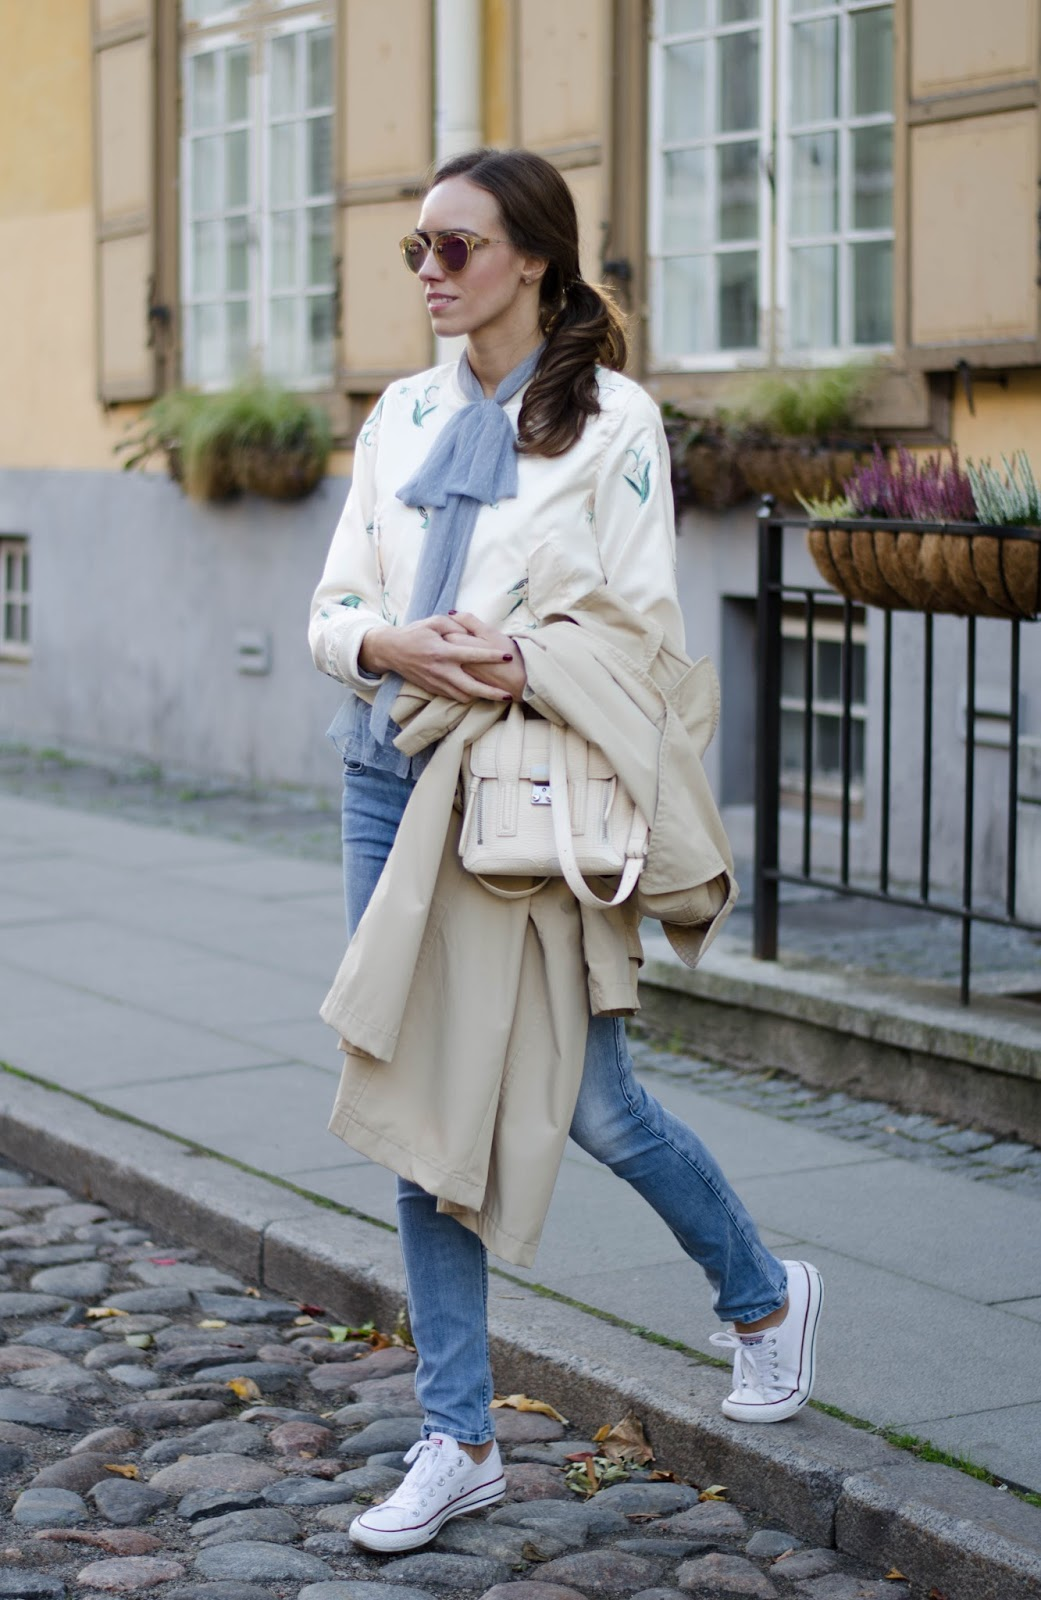 bomber jacket outfit fall